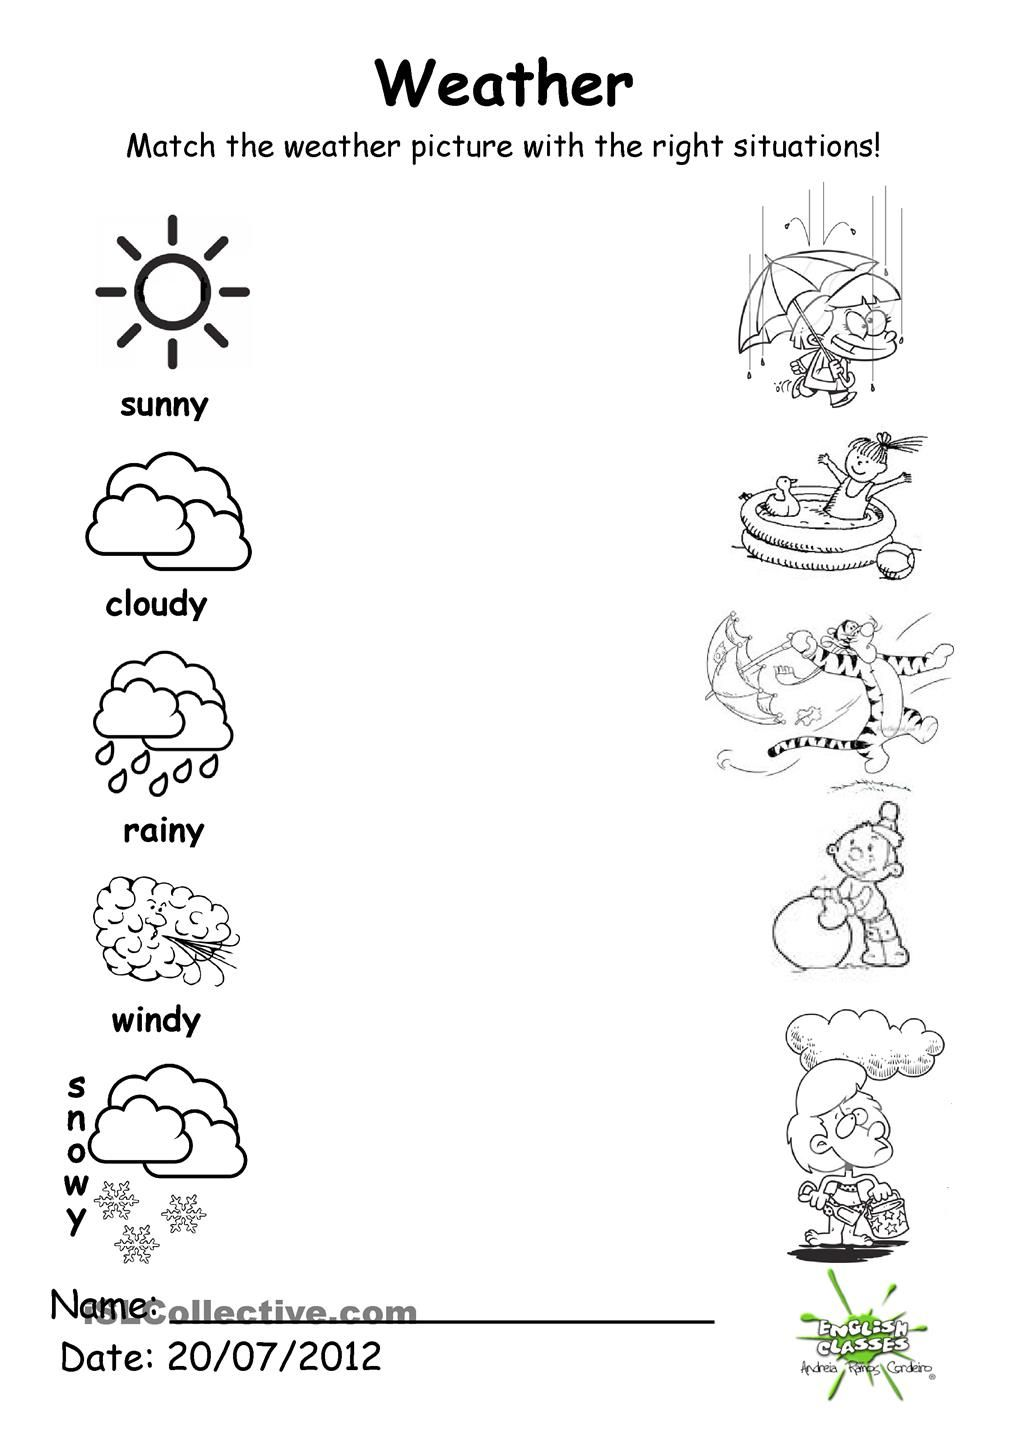 Weather match Weather worksheets, Weather for kids